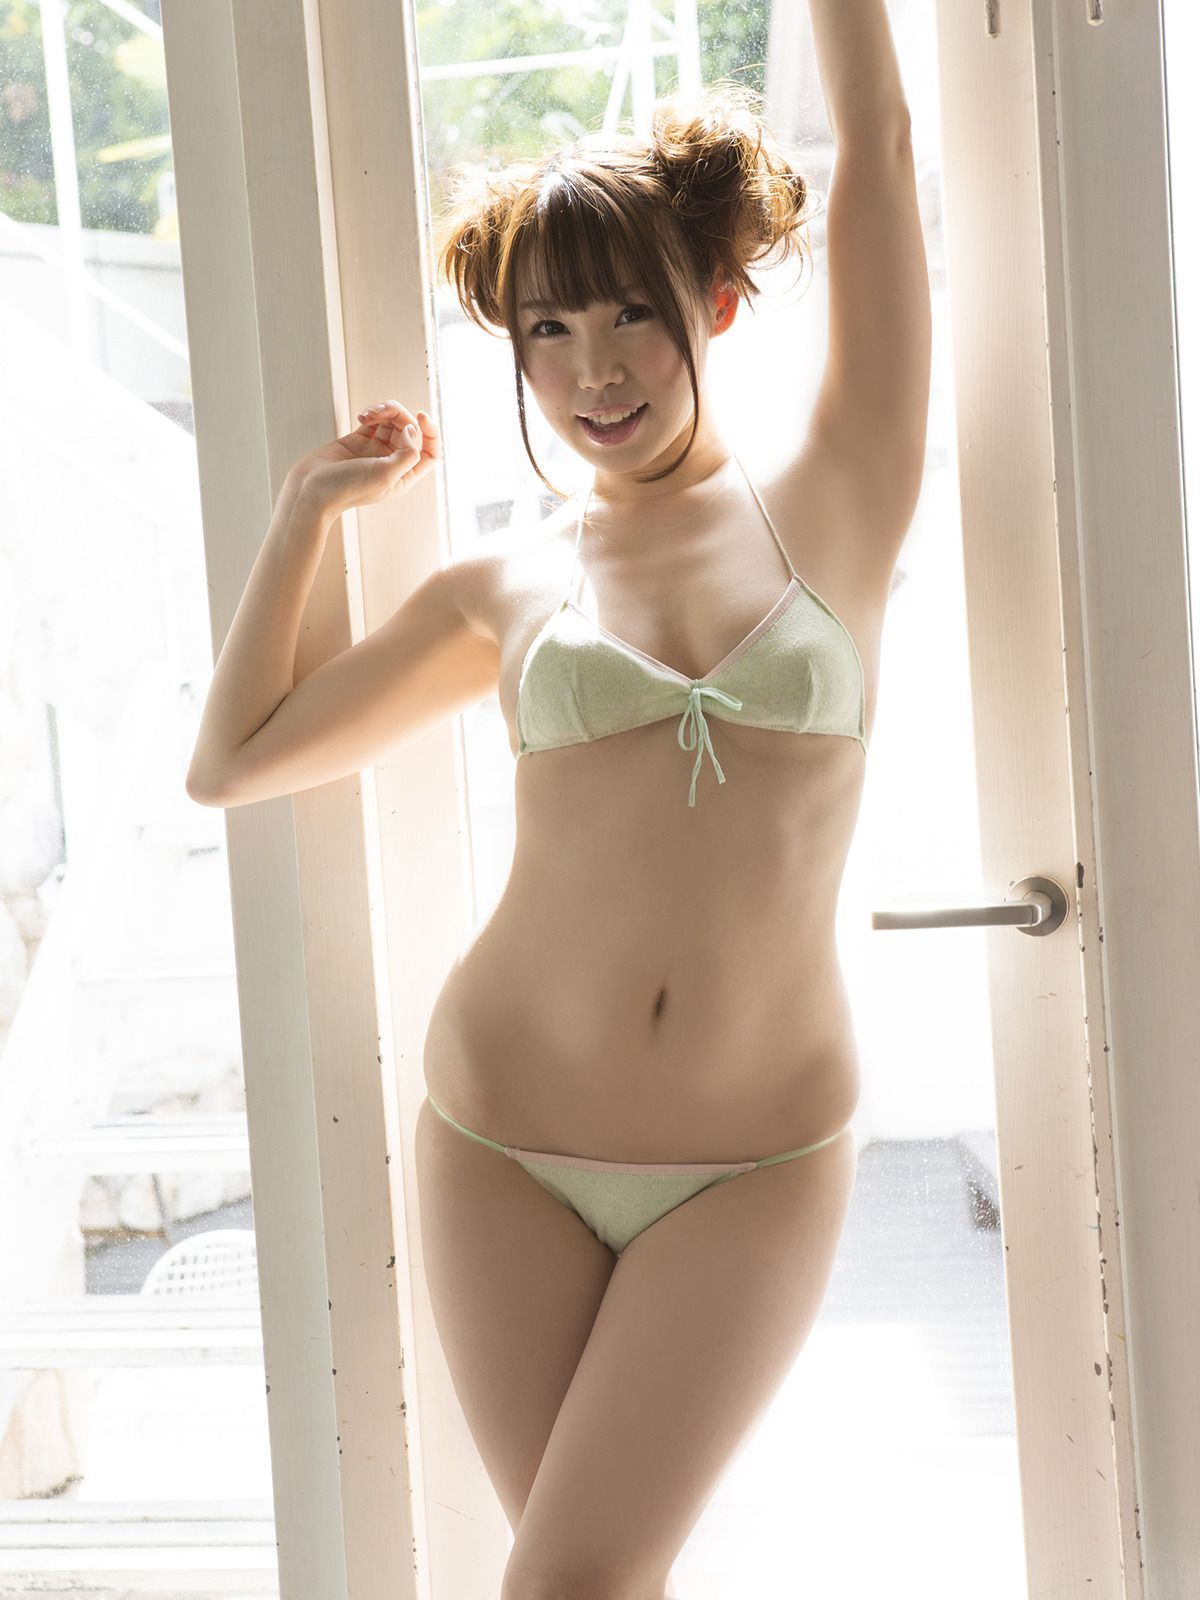 Mai Tsukamoto is naturally energized by the ample G breast021